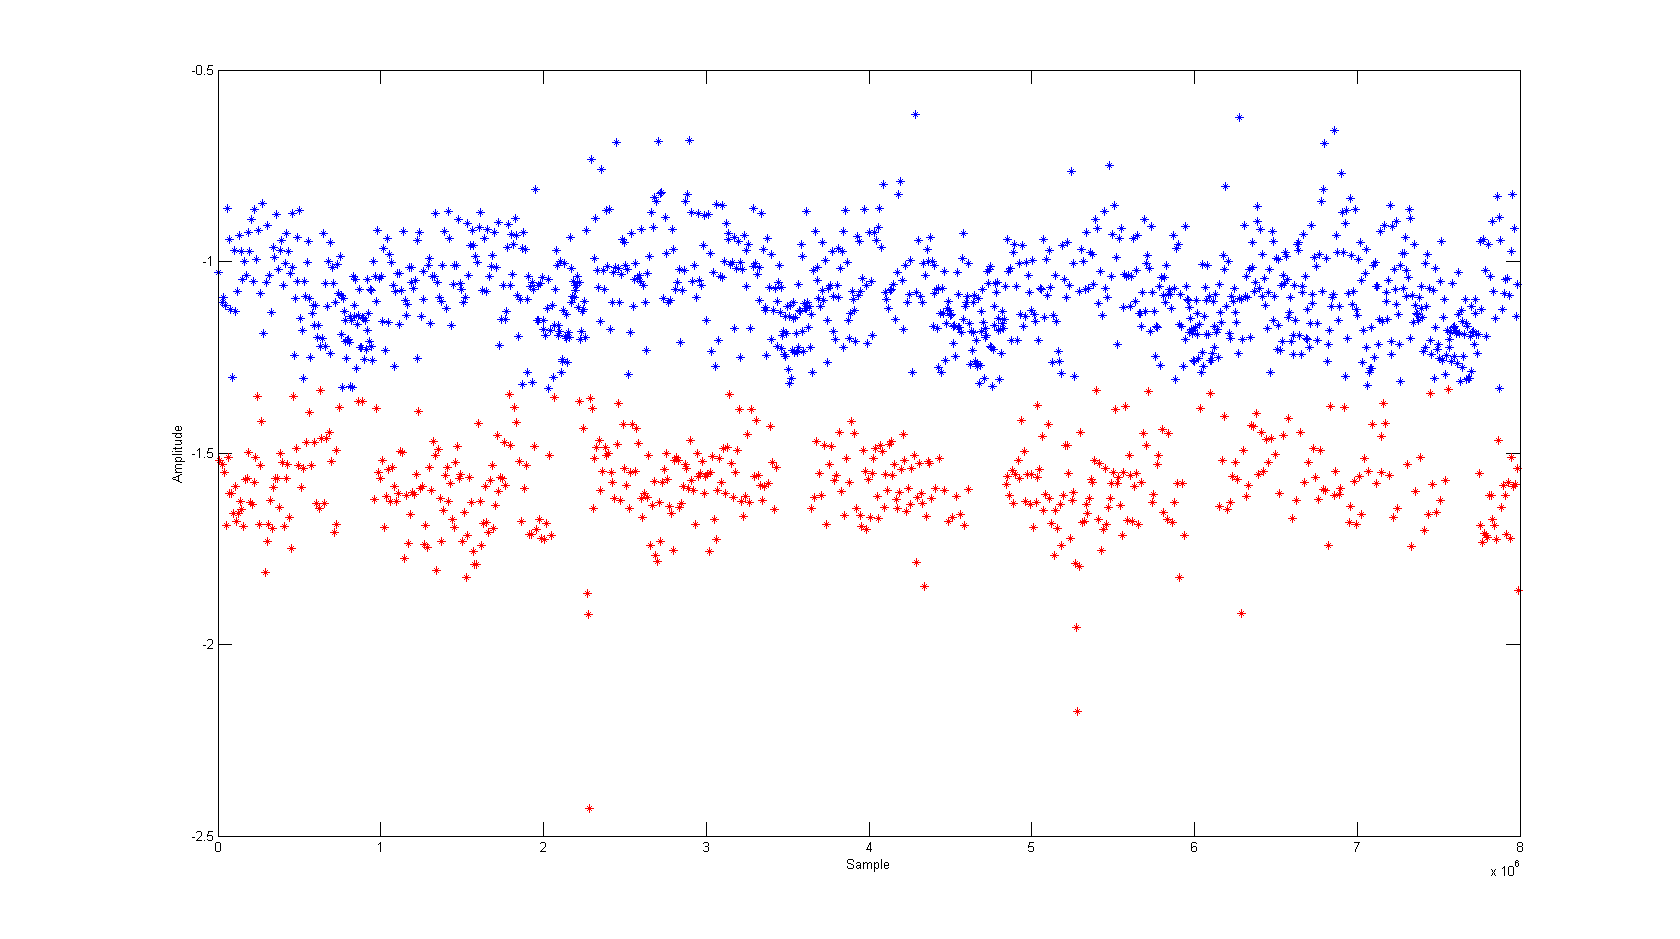 Based on the trace structure, we know that the lower peaks are still the distinguisher between different operations.